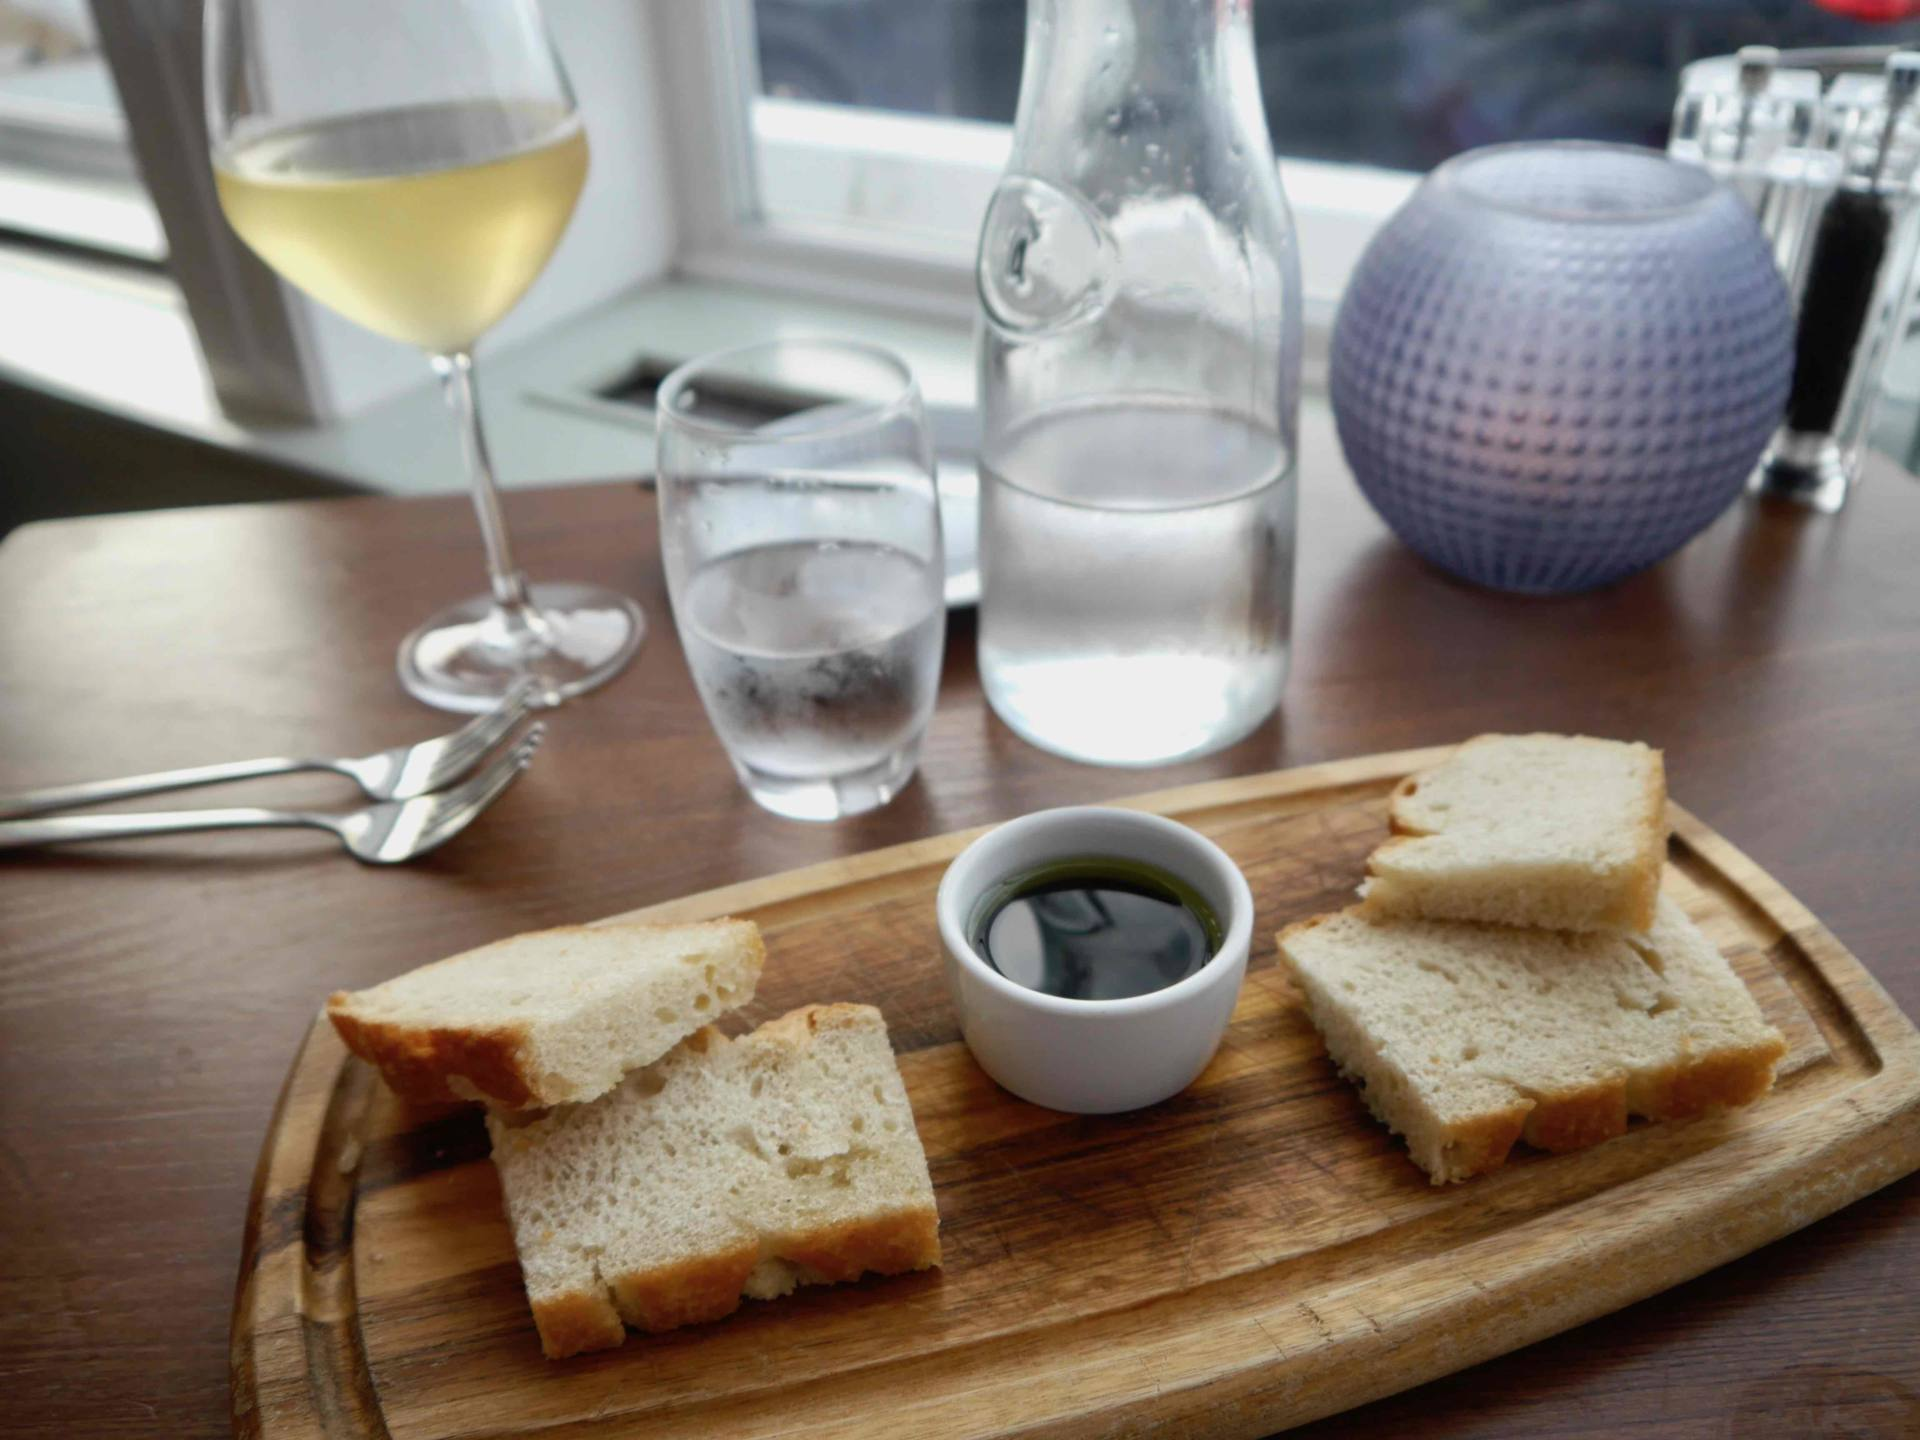 Fistral Beach Hotel and Spa | Dune Restaurant | Foccacia Bread